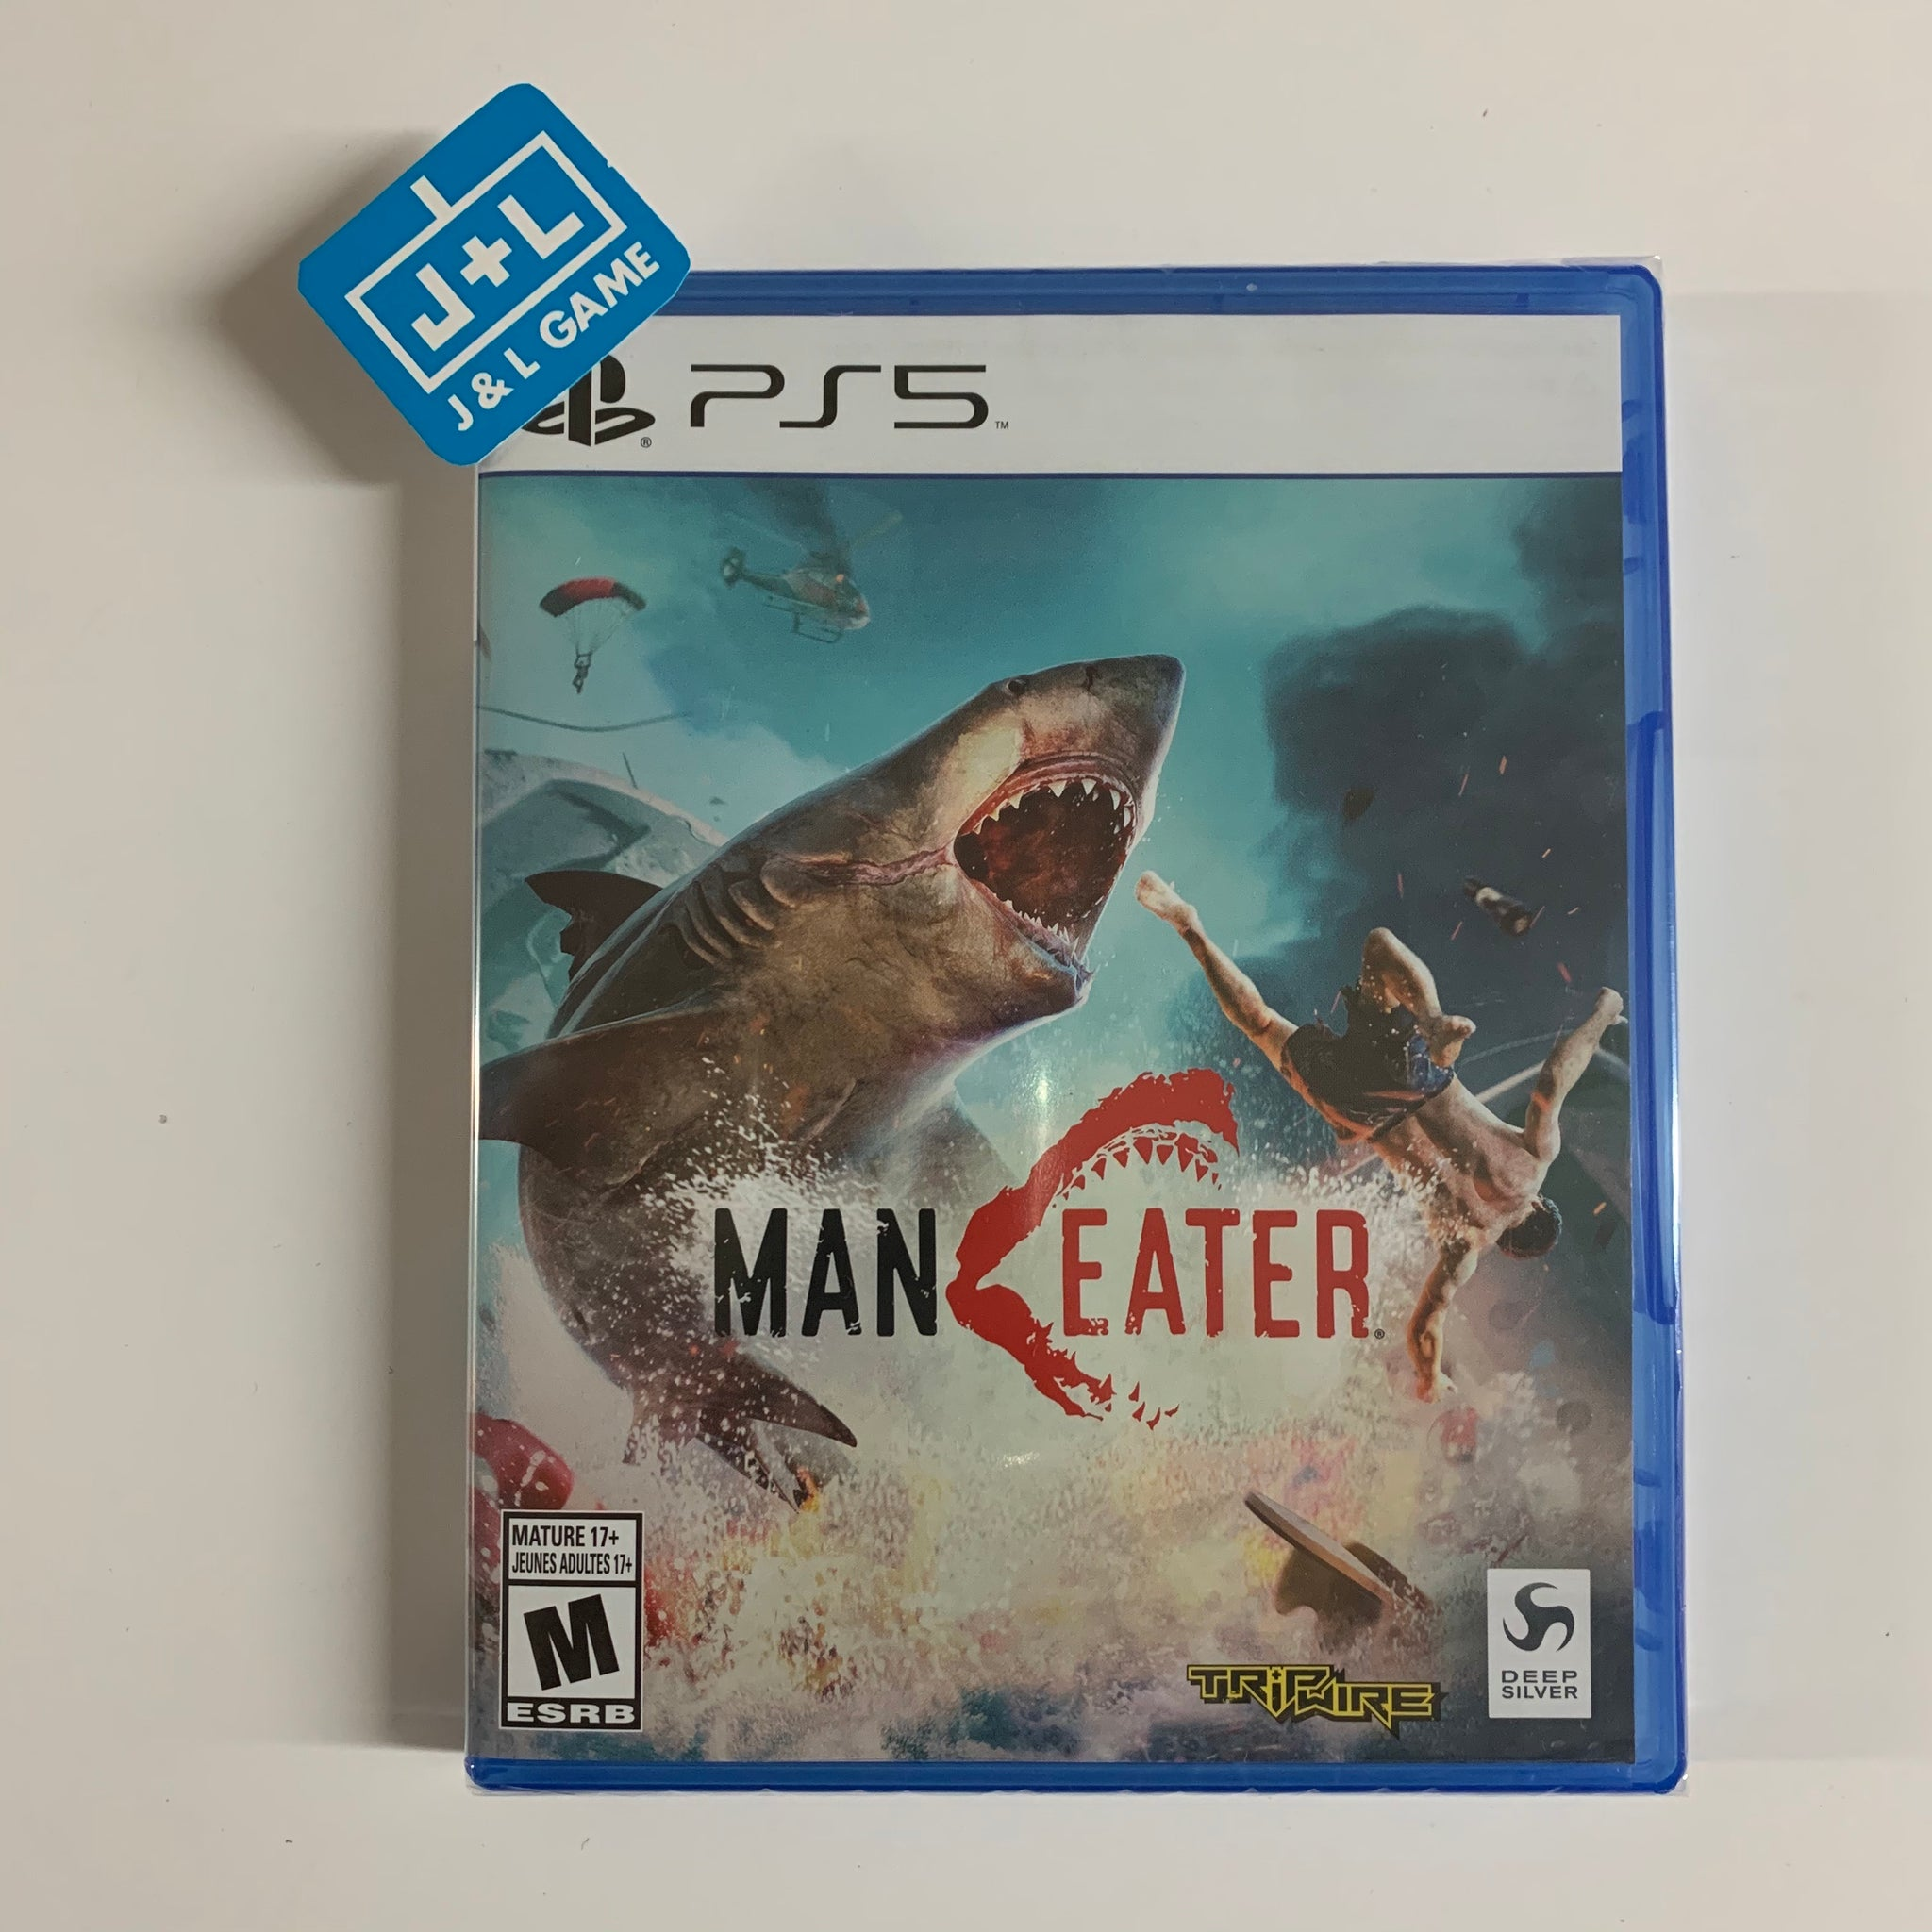 Maneater - PlayStation 5 Box Cover